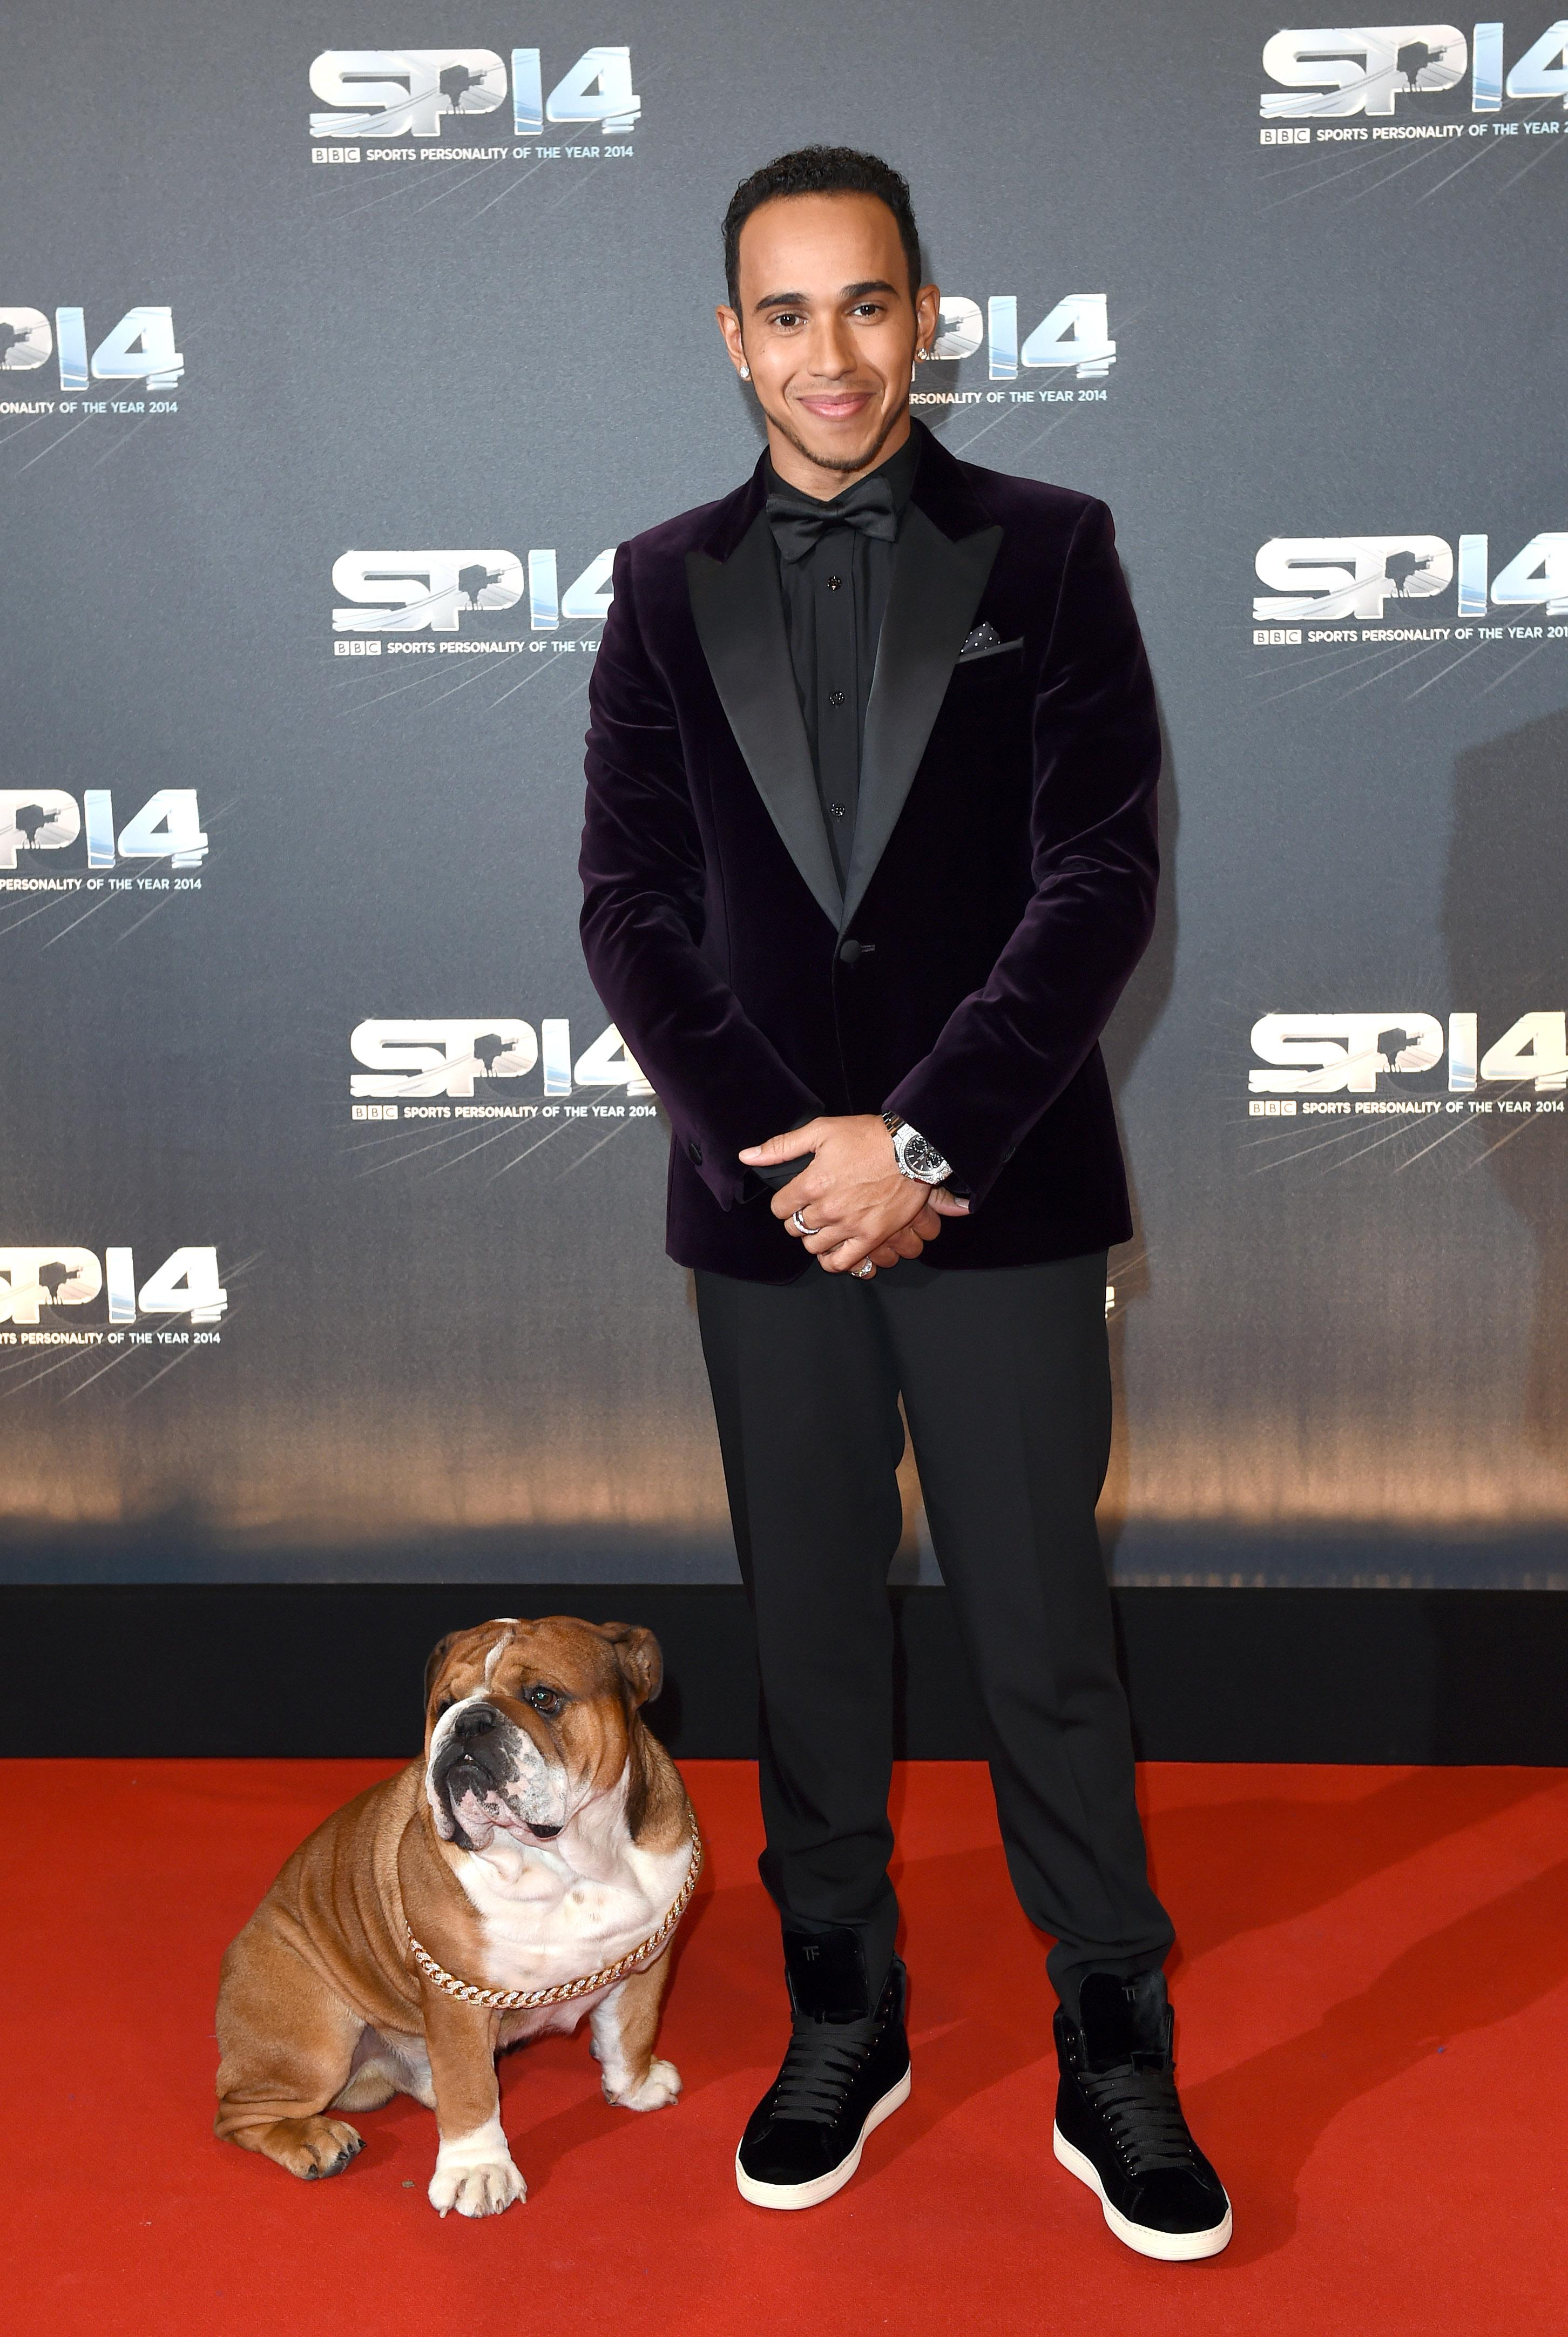 Lewis Hamilton has revealed how his pet pooch is raking it in... as a model